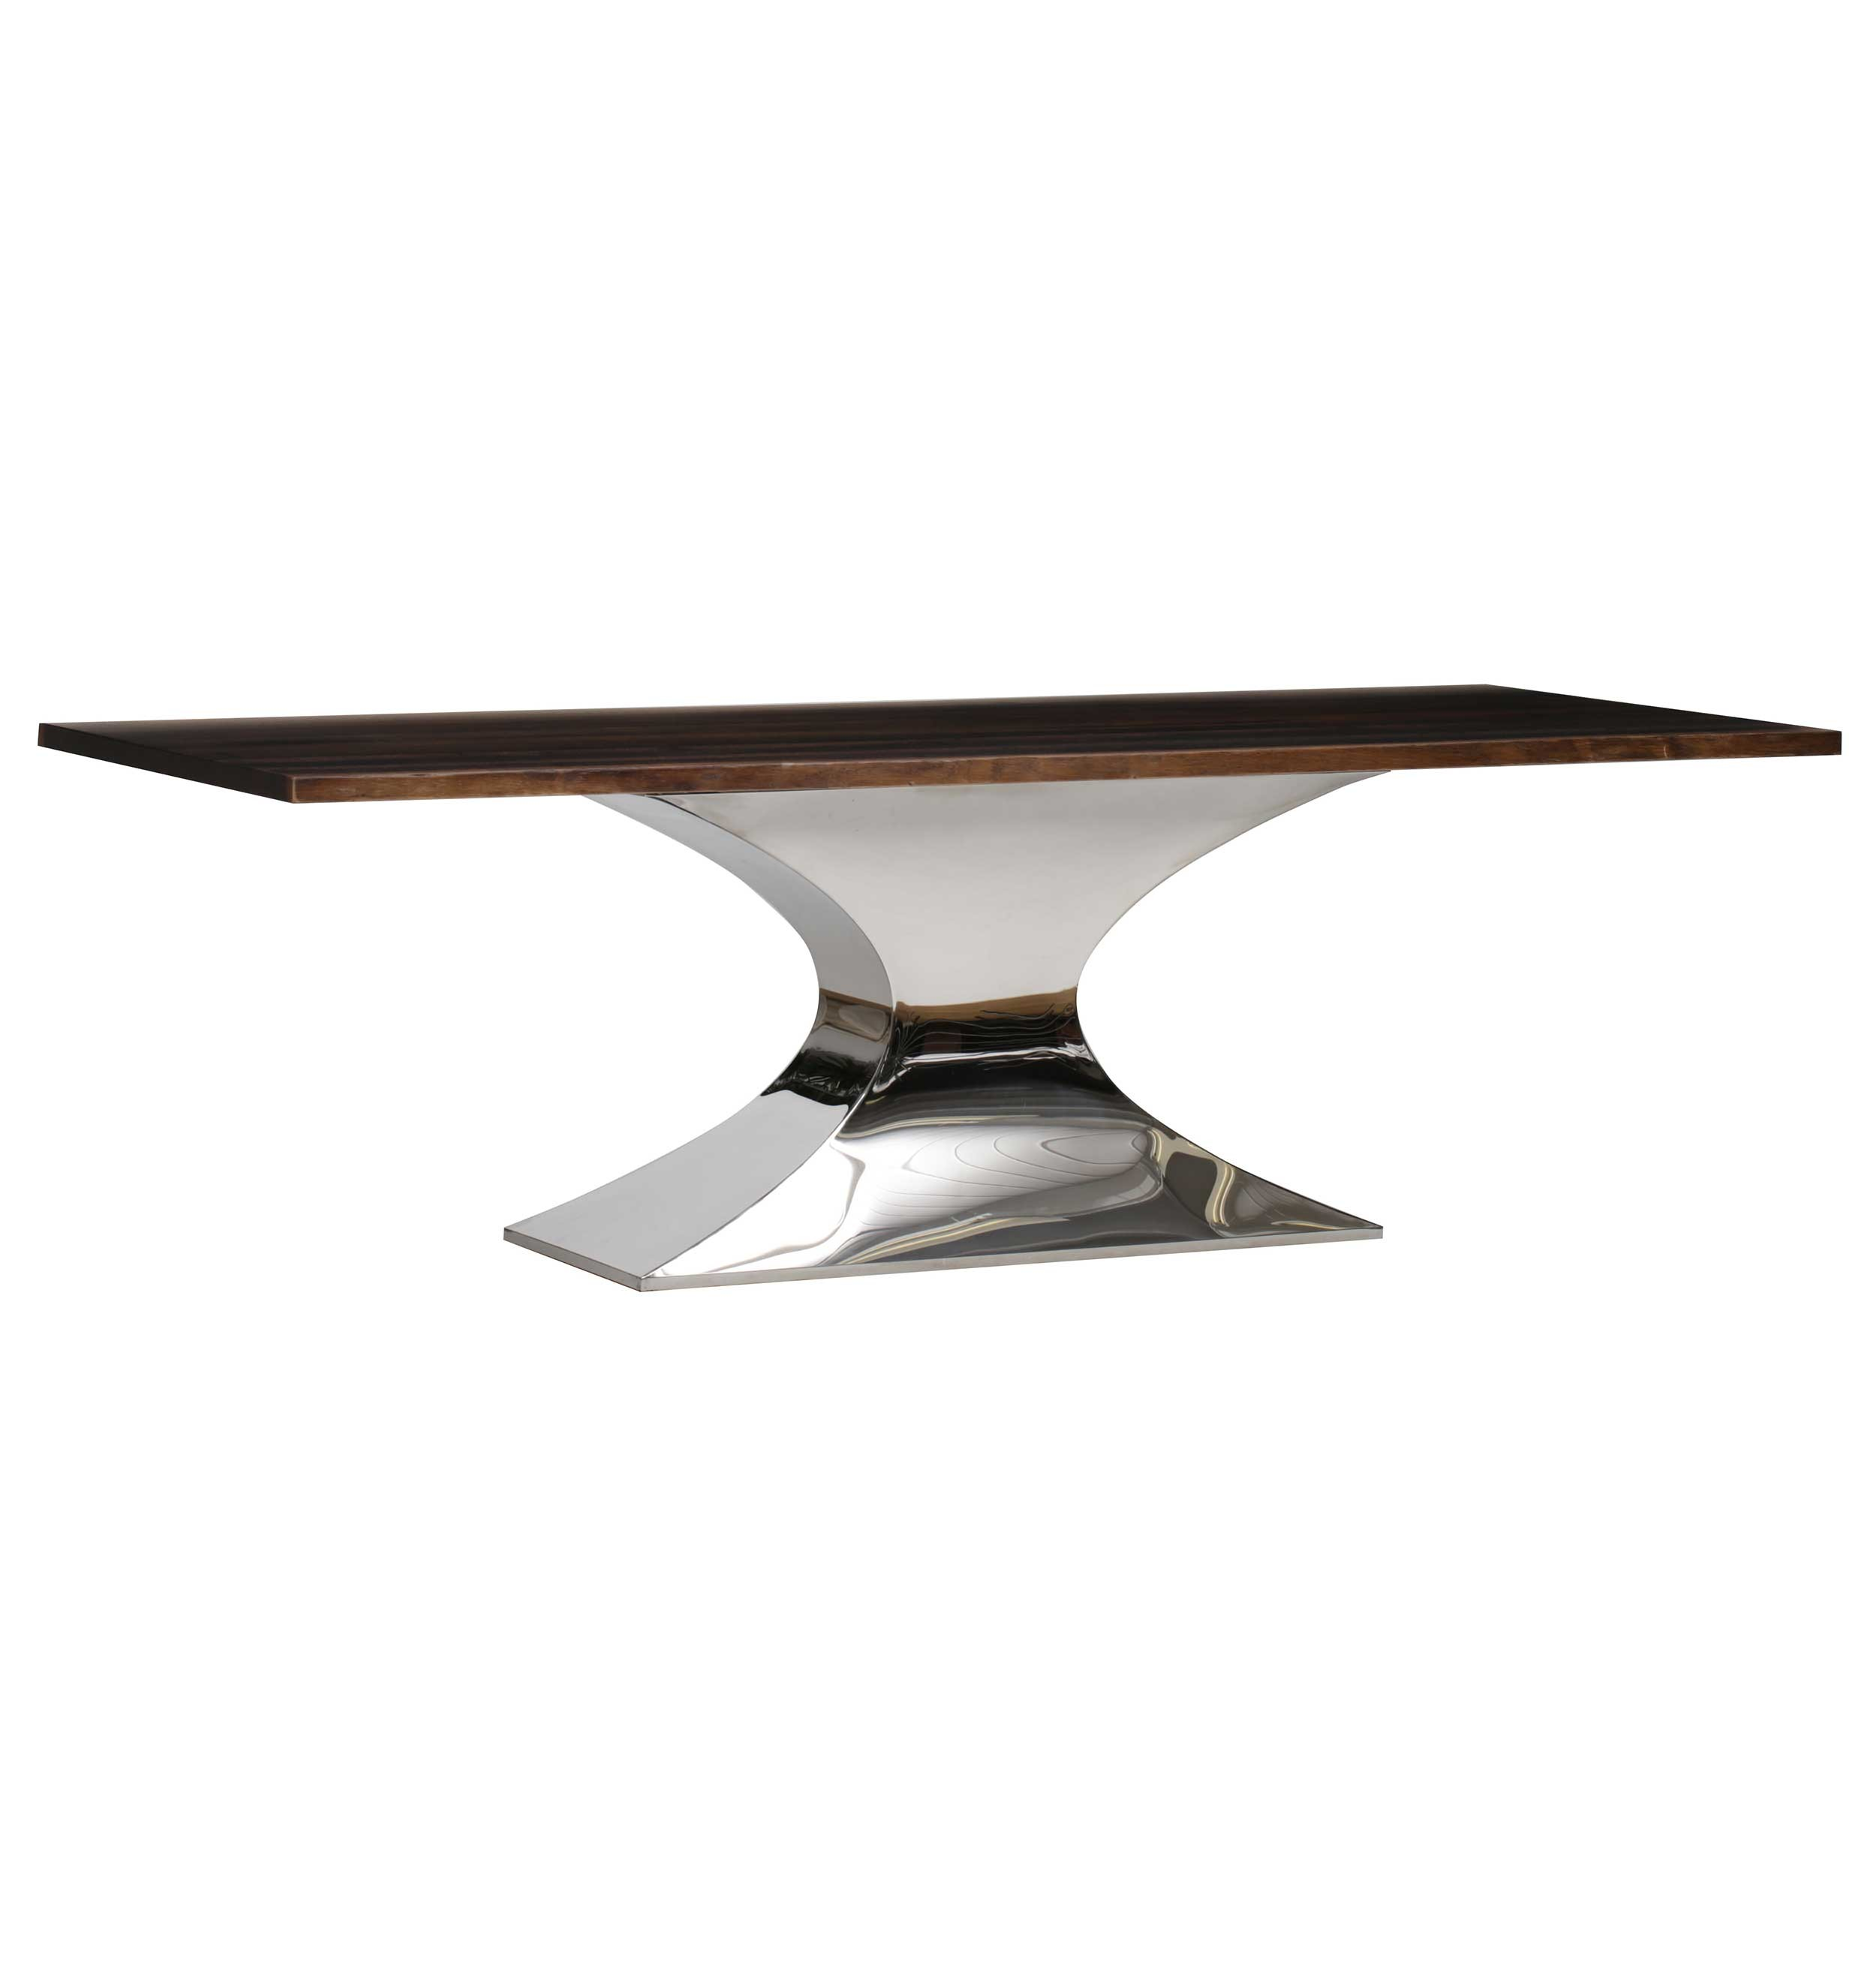 Nuevo modern furniture hgsx229 praetorian 112 dining table in seared oak on silver stainless steel base